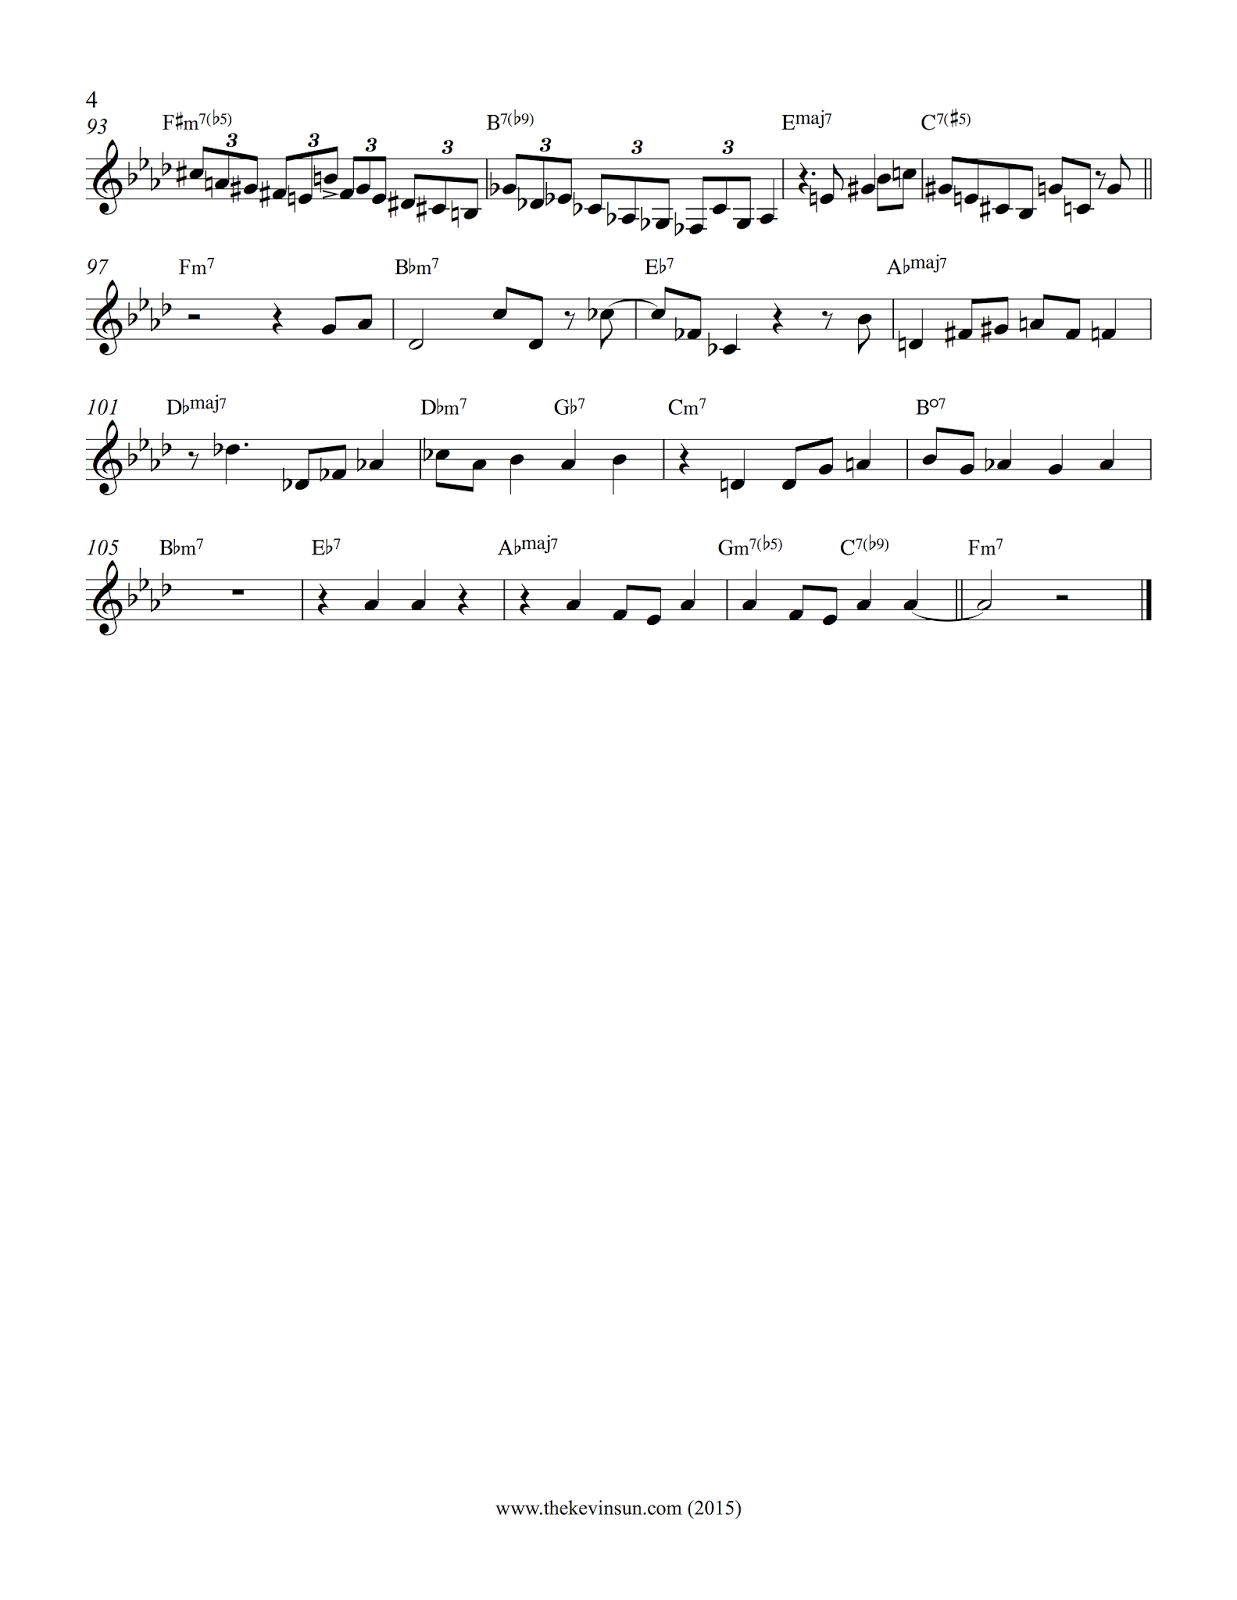 All The Things You Are Paul Bley Solo Page 4